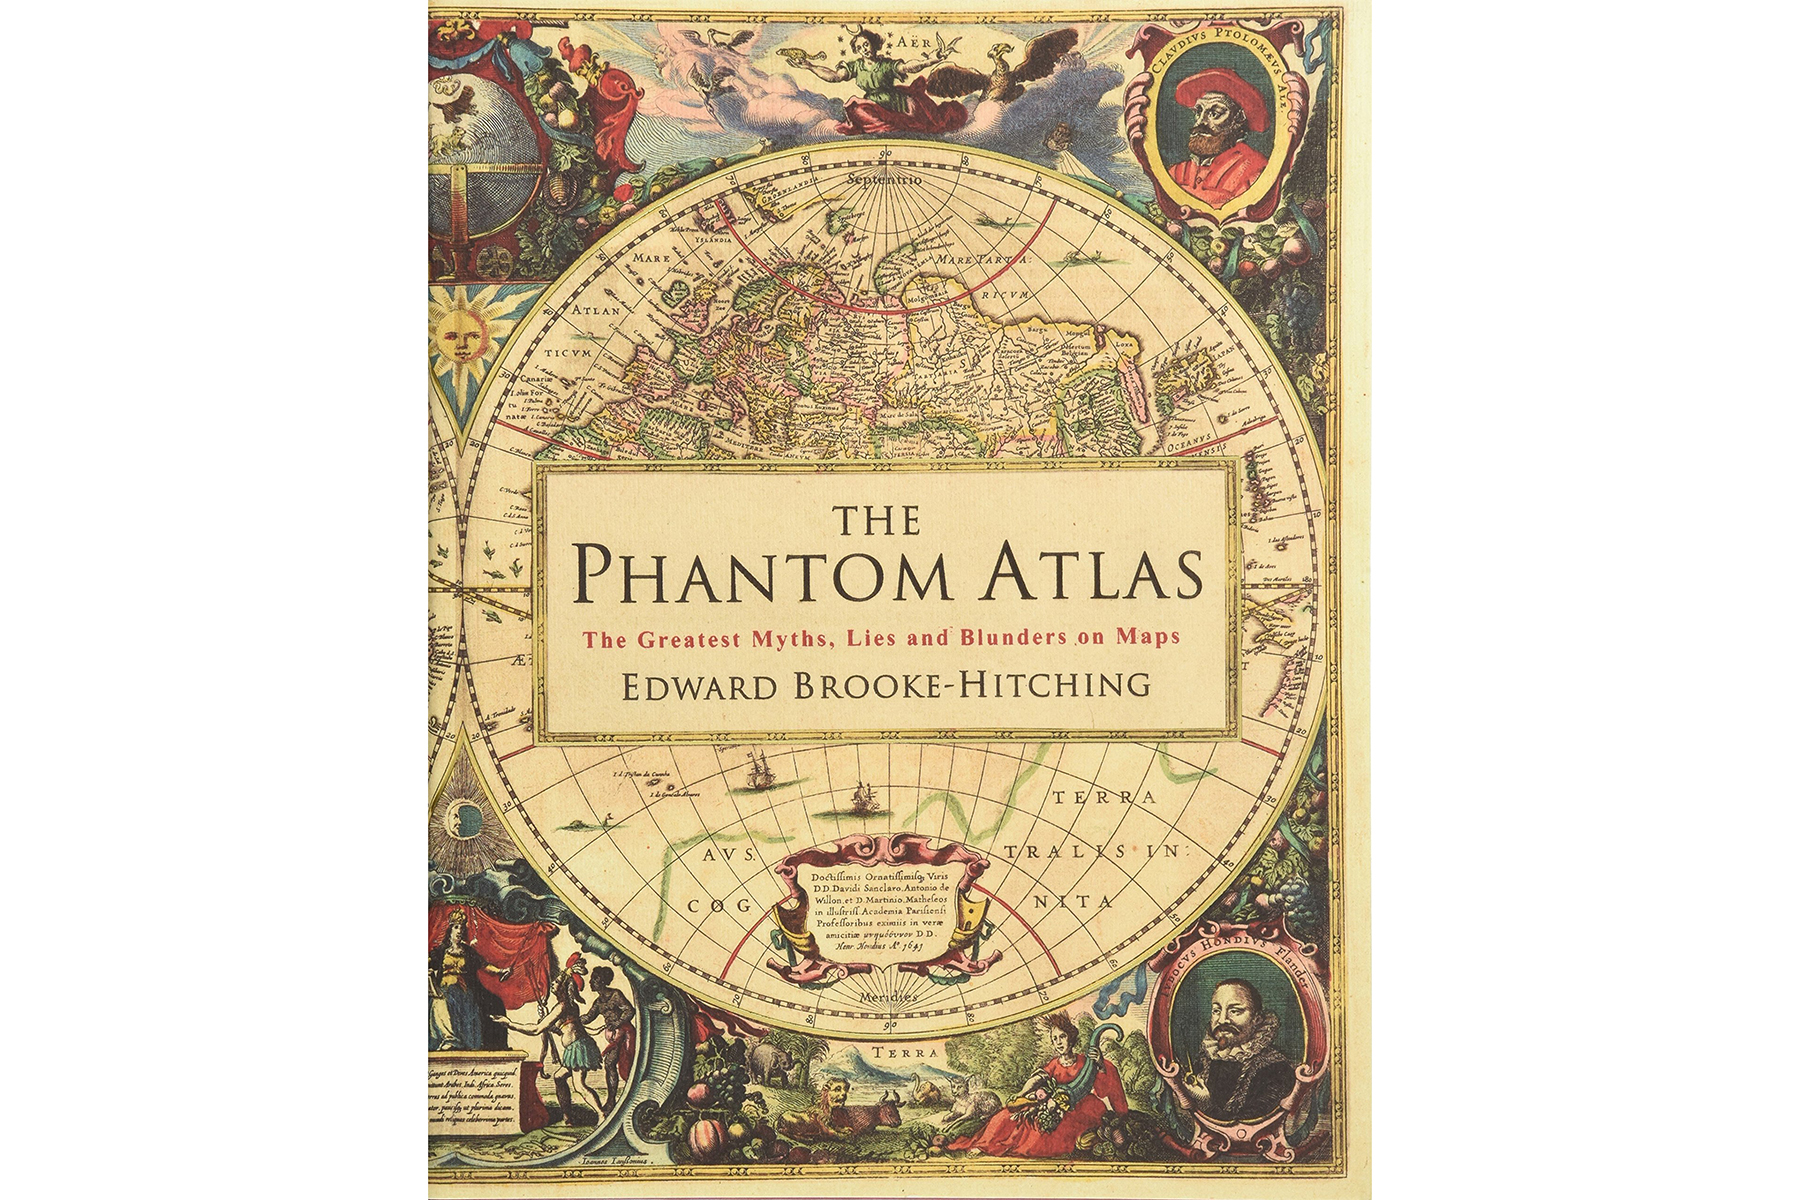 The Phantom Atlas, by Edward Brooke-Hitching (Father's Day)